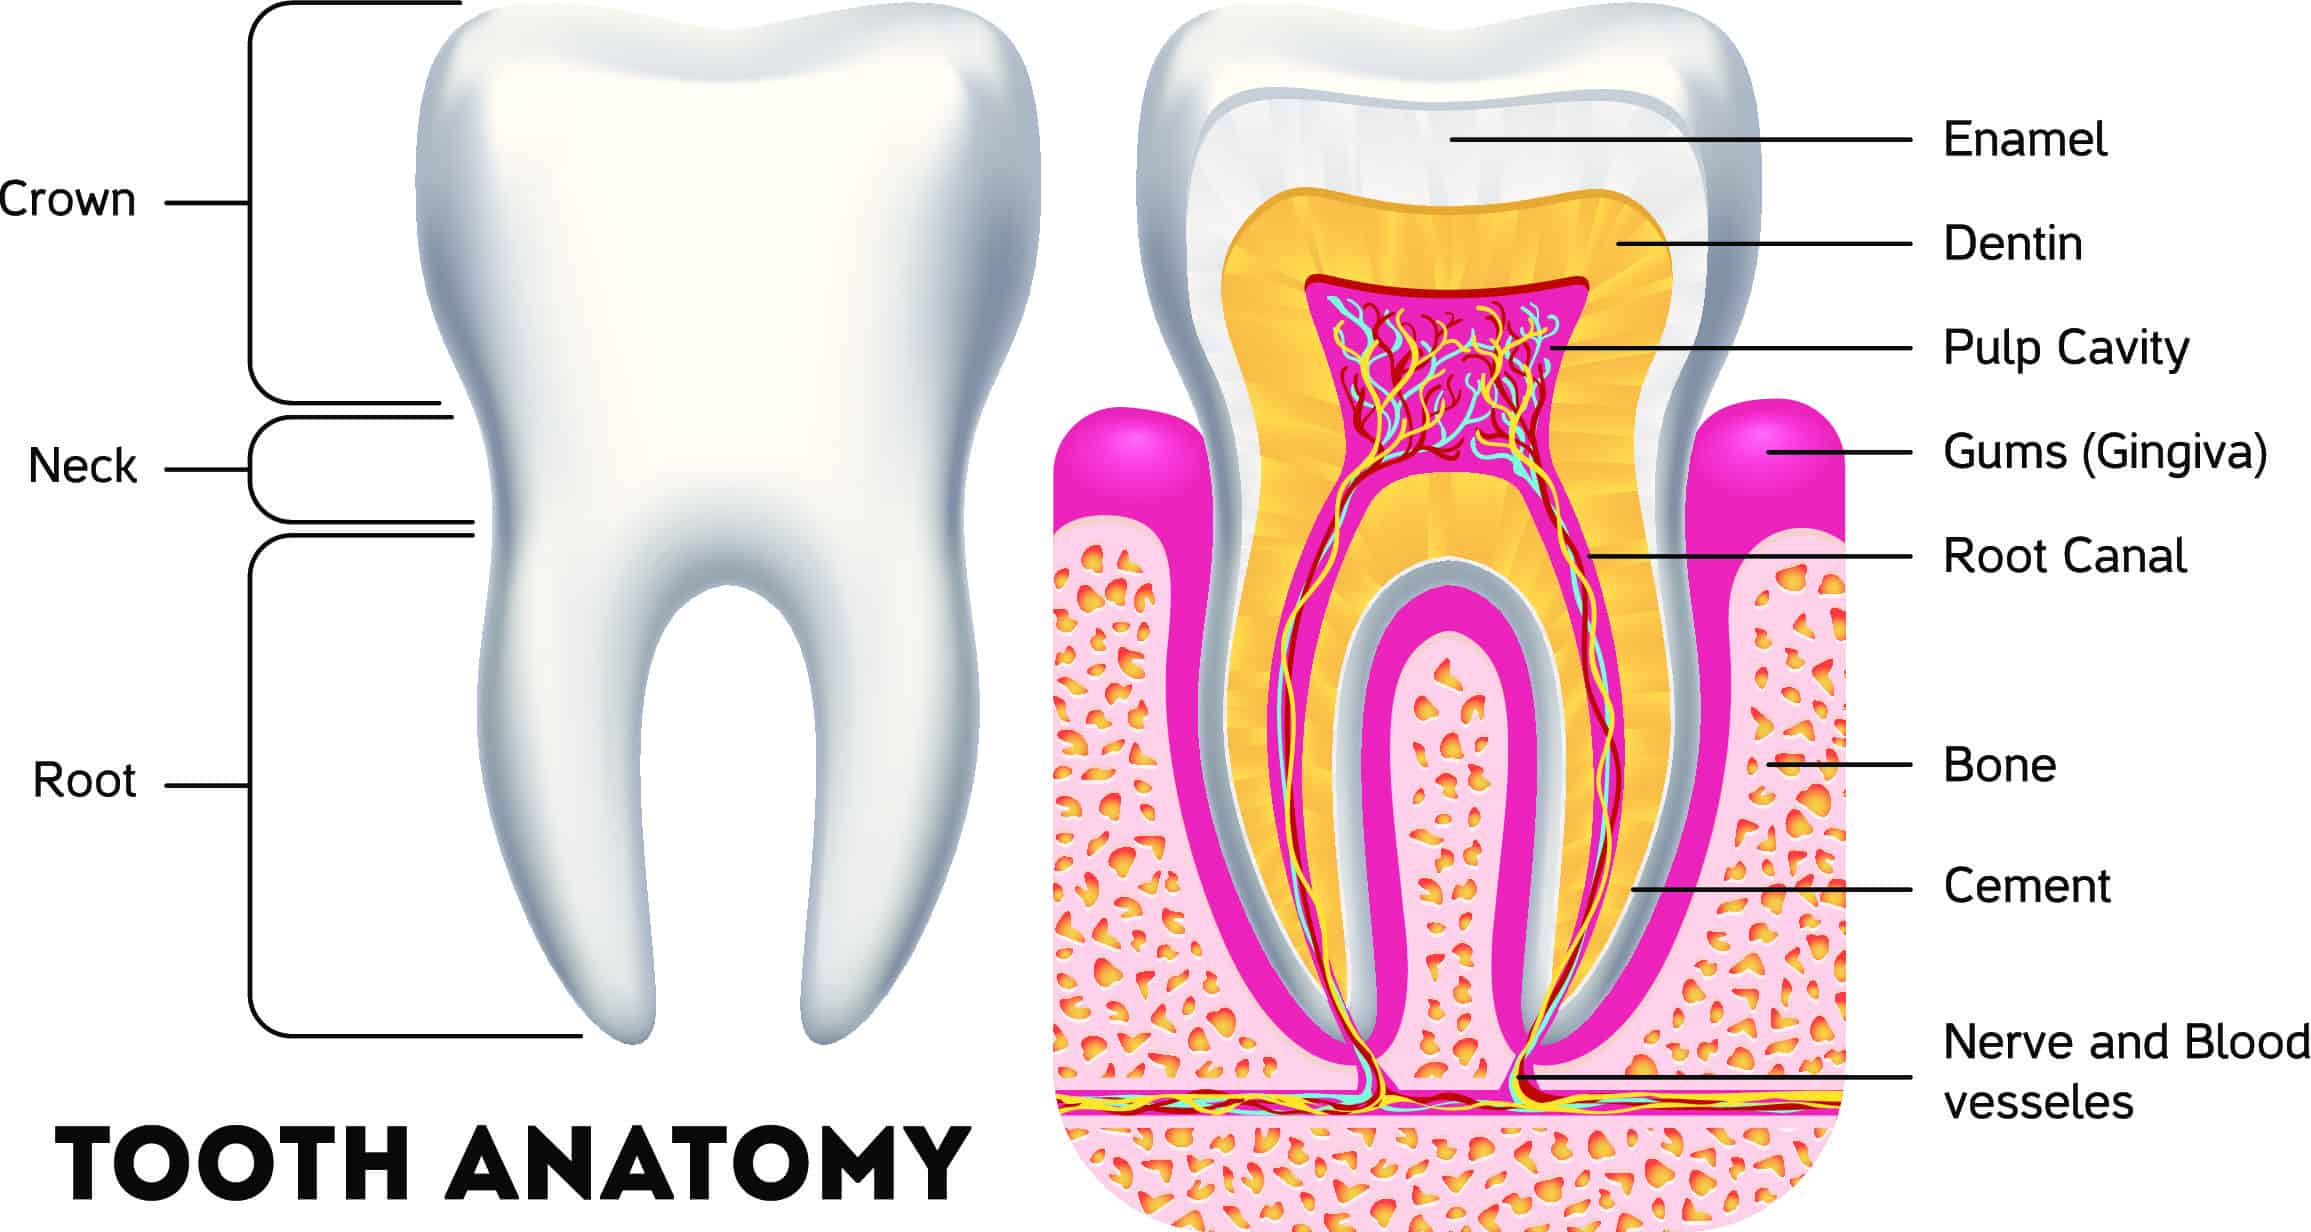 anatomy of a tooth showing dentin and enamel